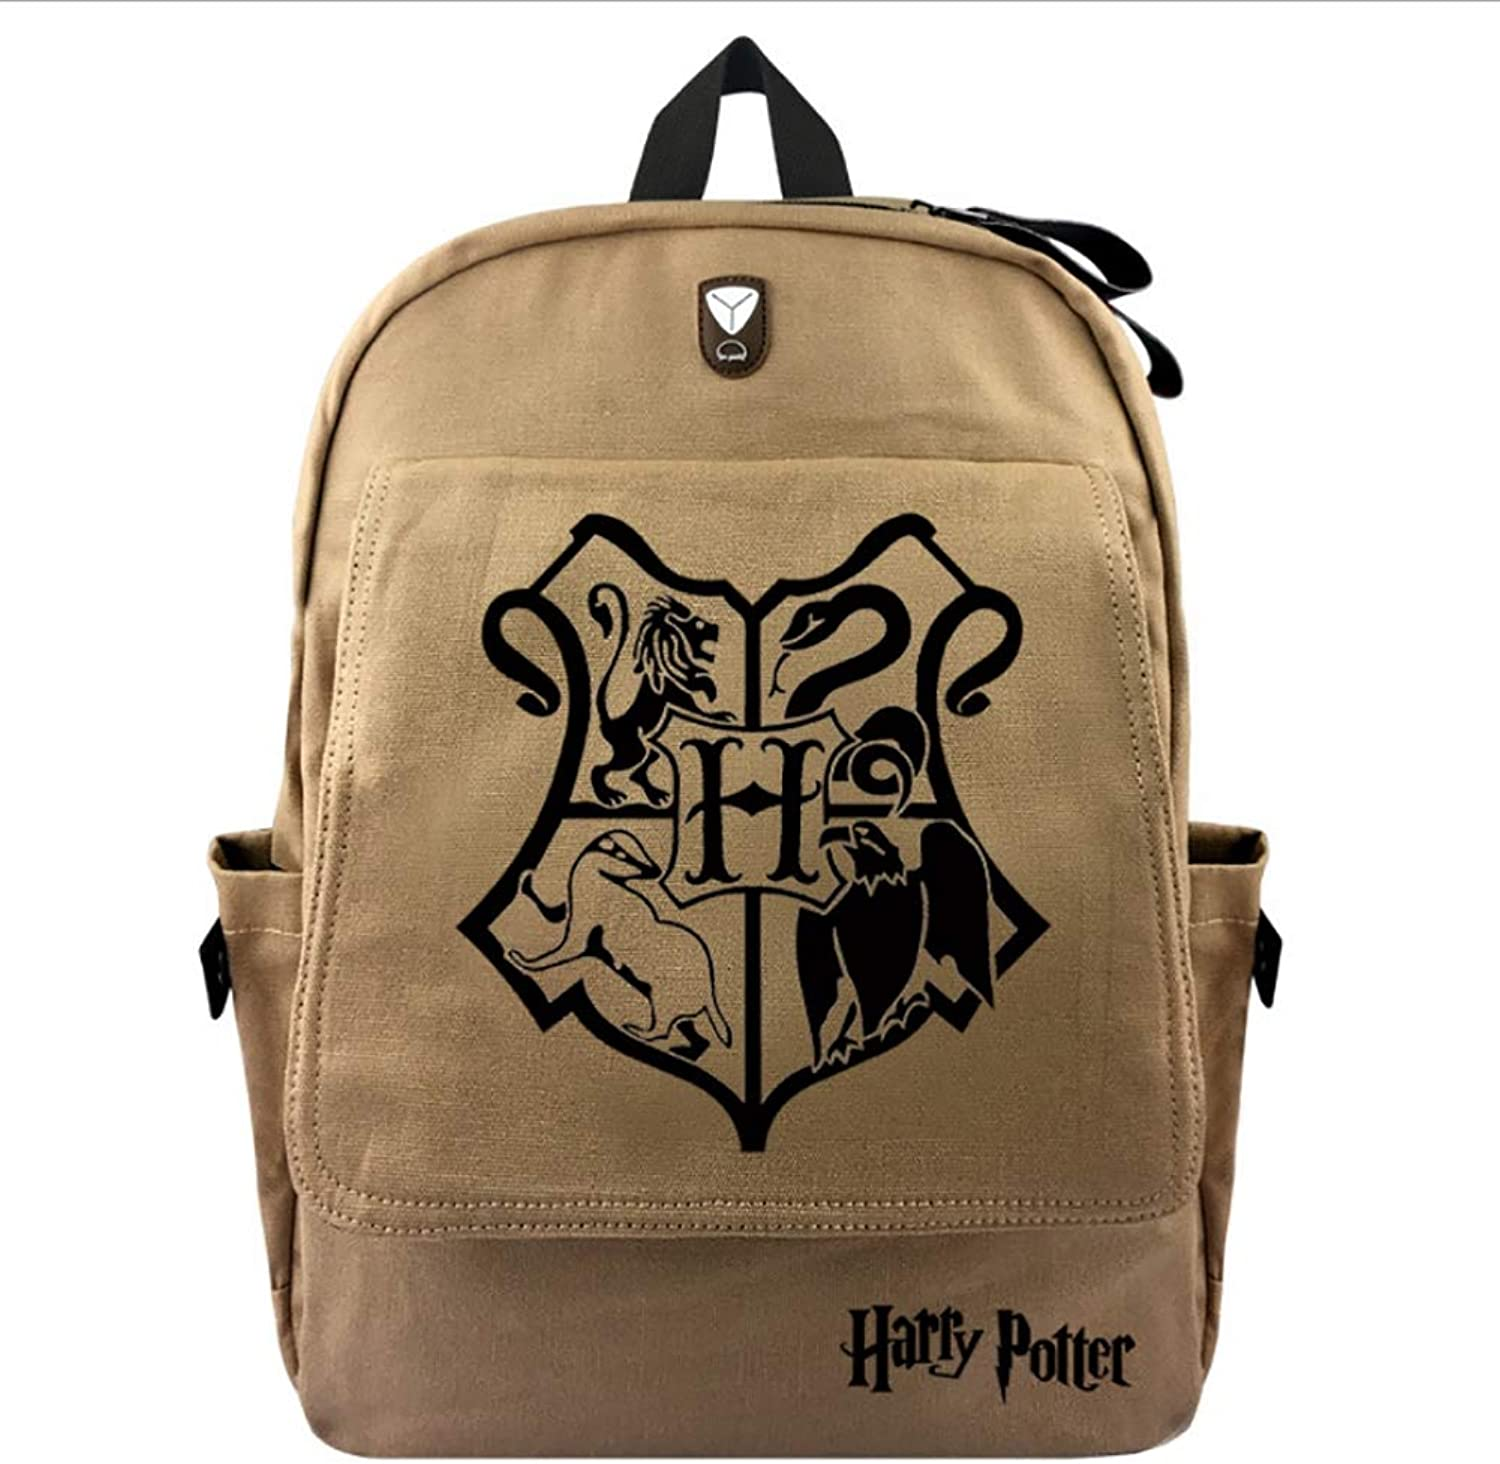 Backpack School Bag Harri Potter Series Bookbag with Computer Interlayer Backbag Laptop Shoulders Bag Travel Bag Gift3930  12cm